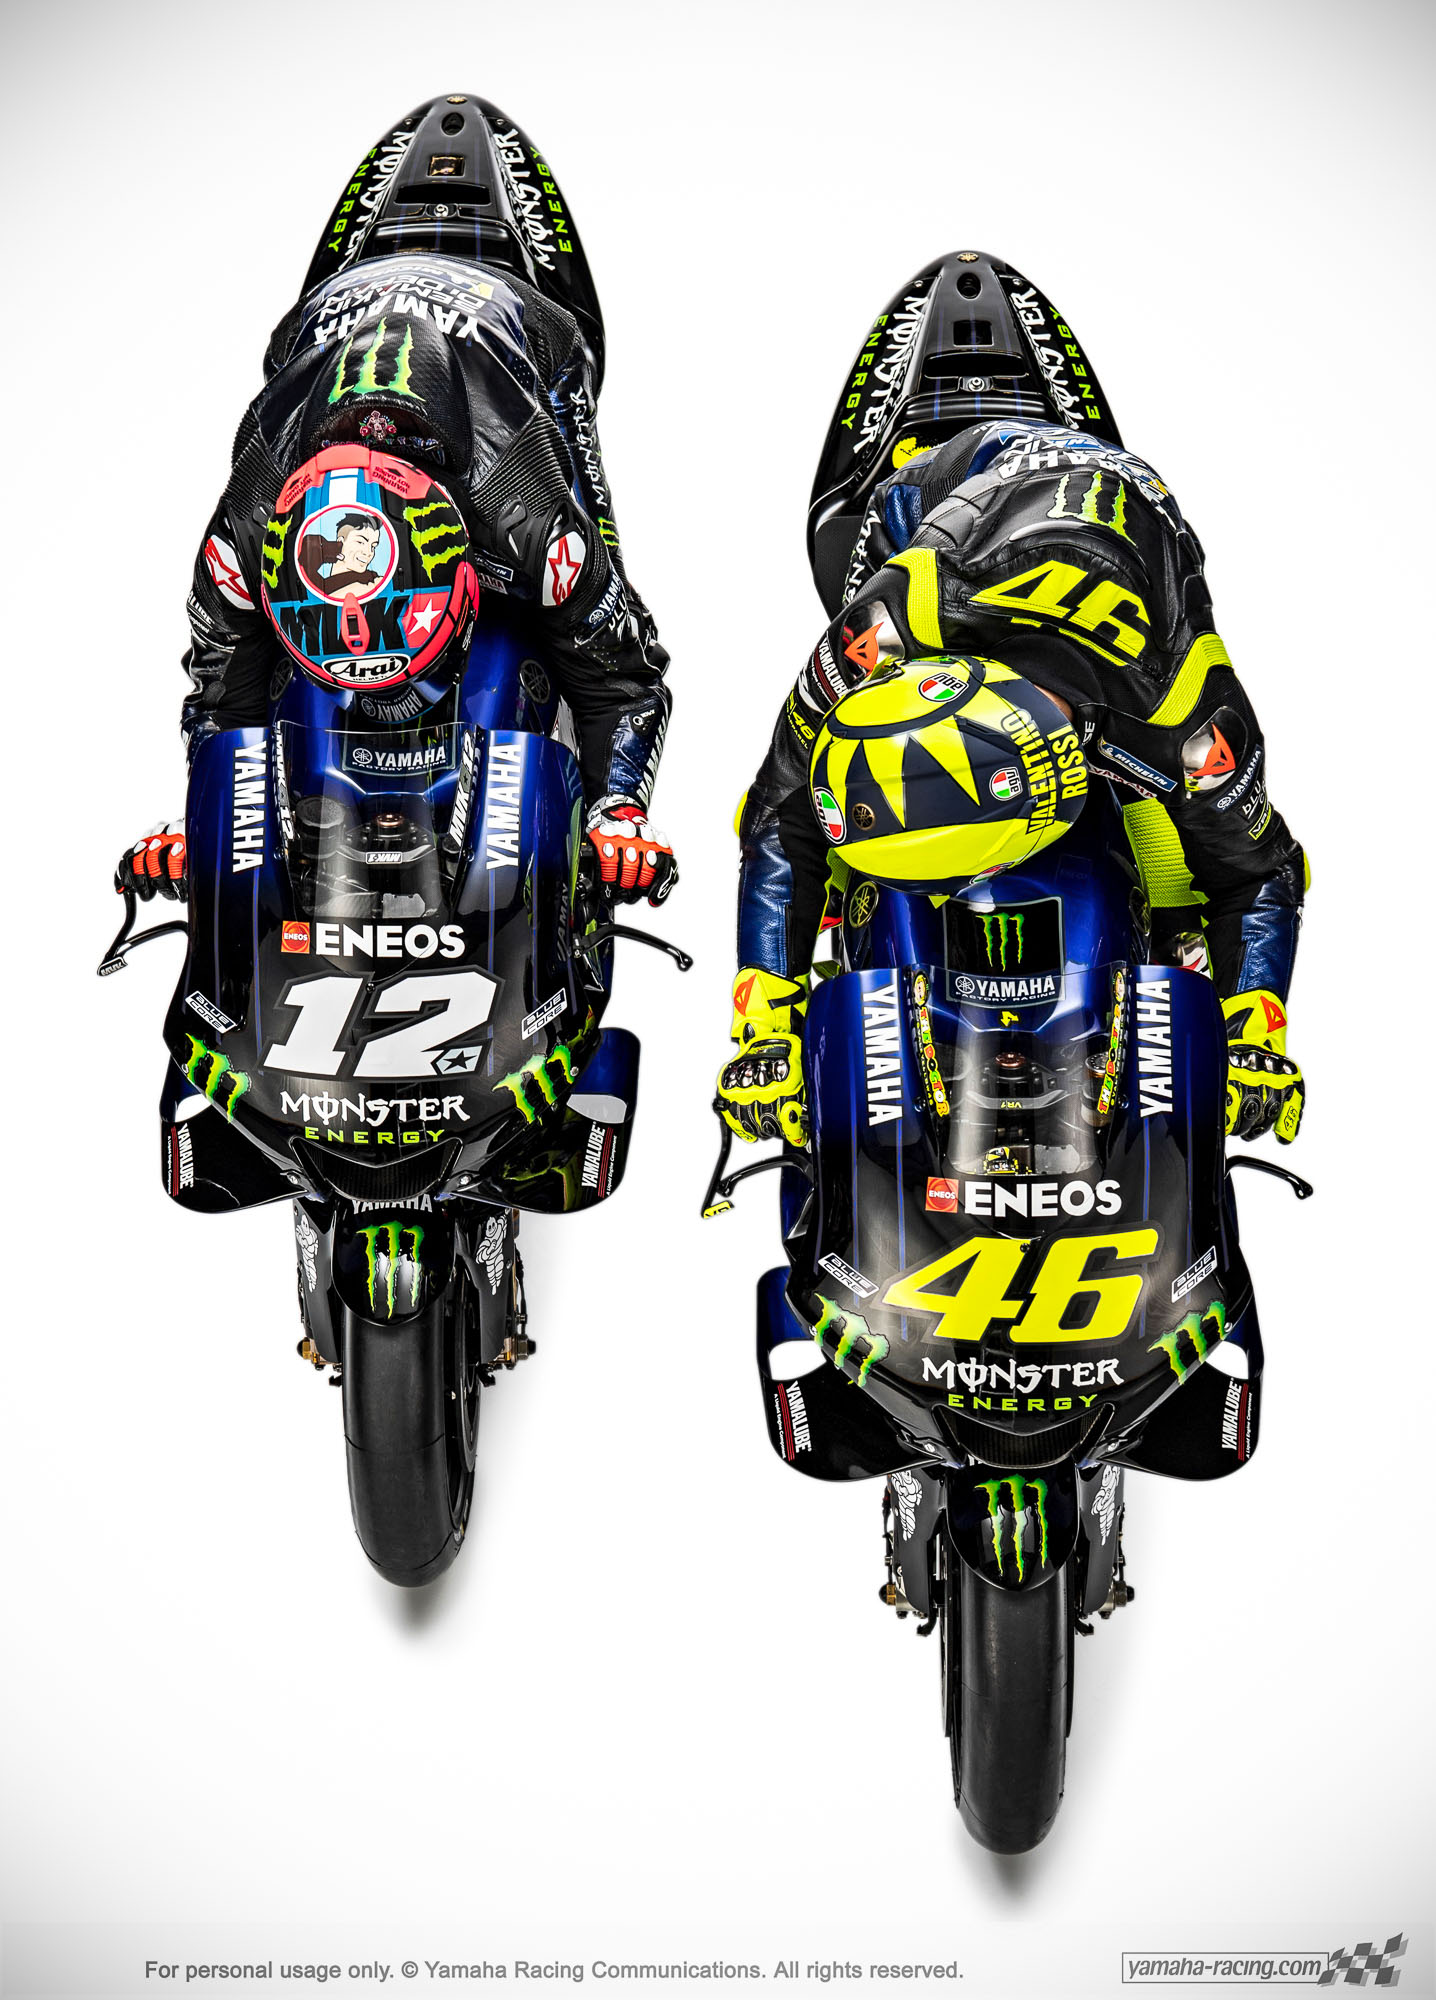 Wallpaper Yamaha M1 MotoGP 2019 Monster Energy Pertamax7